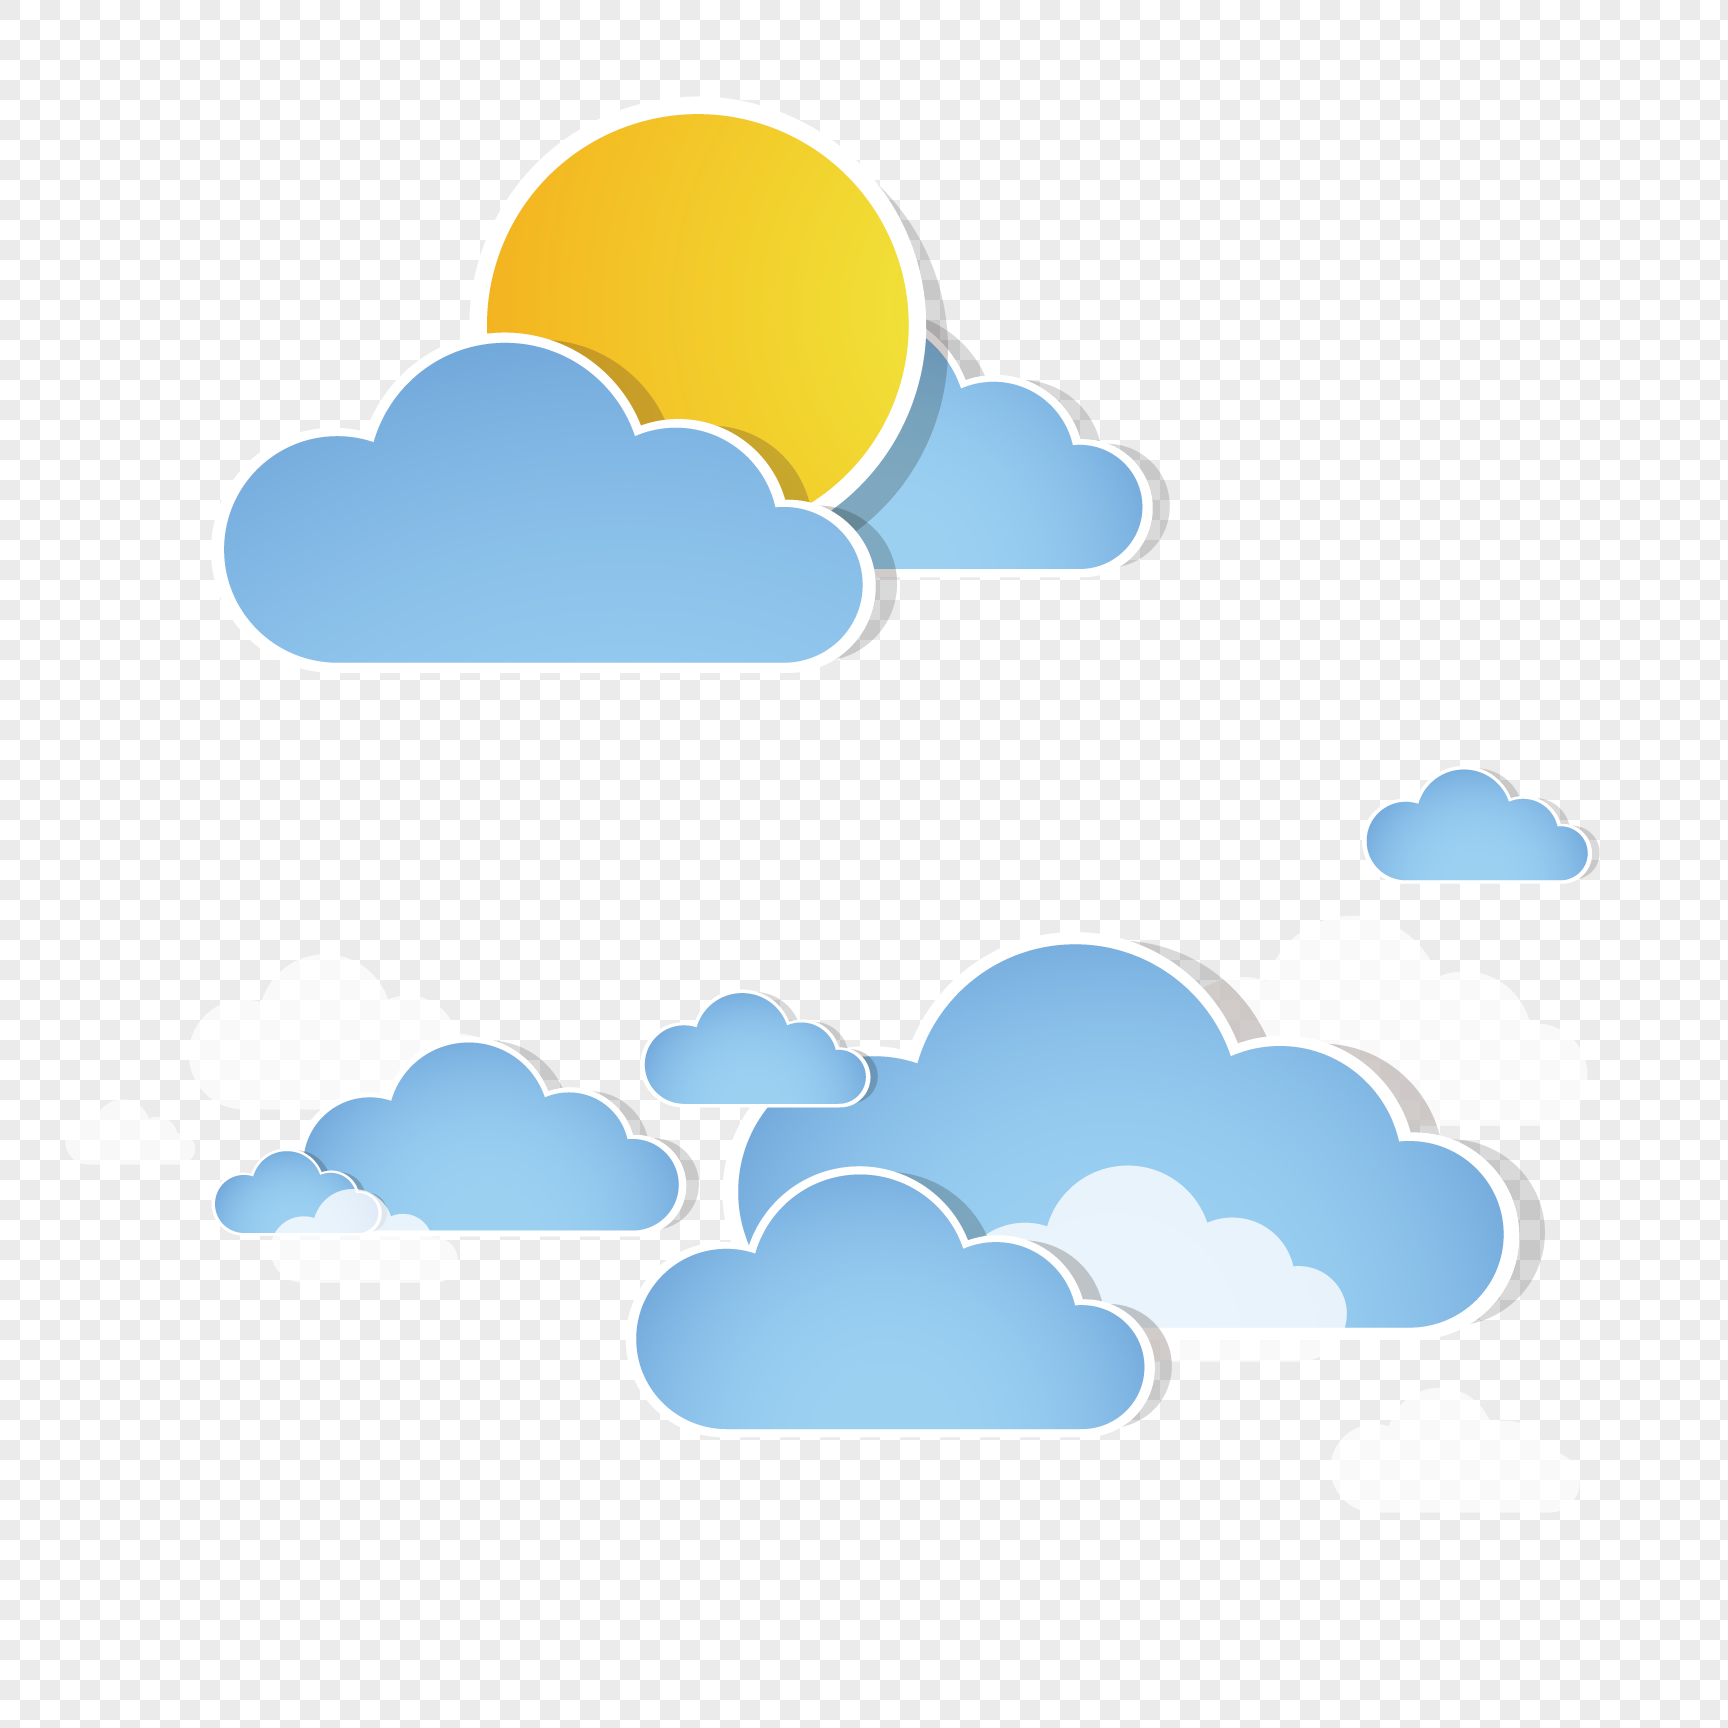 Cartoon Cloud Png 8.